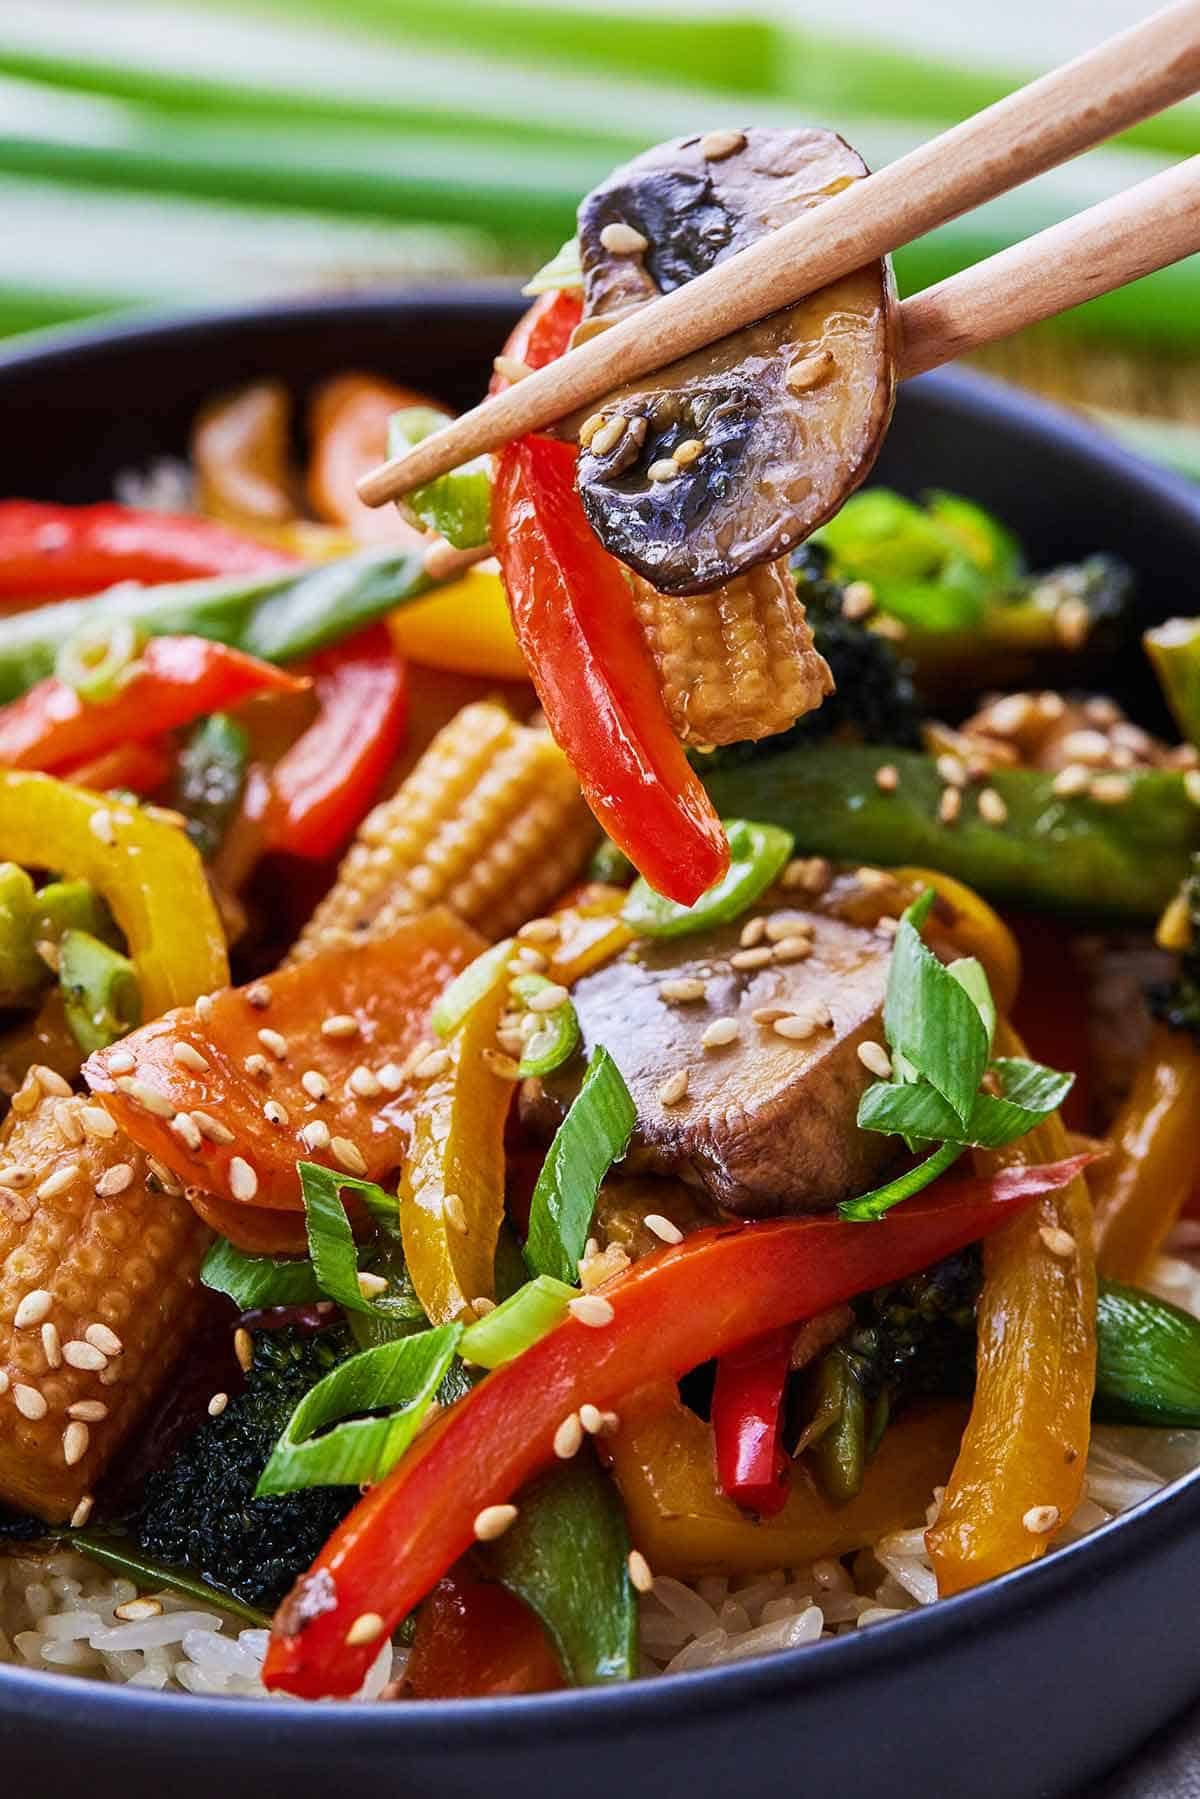 Close up of a chopstick lifting up mushrooms, bell pepper, and baby corn from a stir fry.